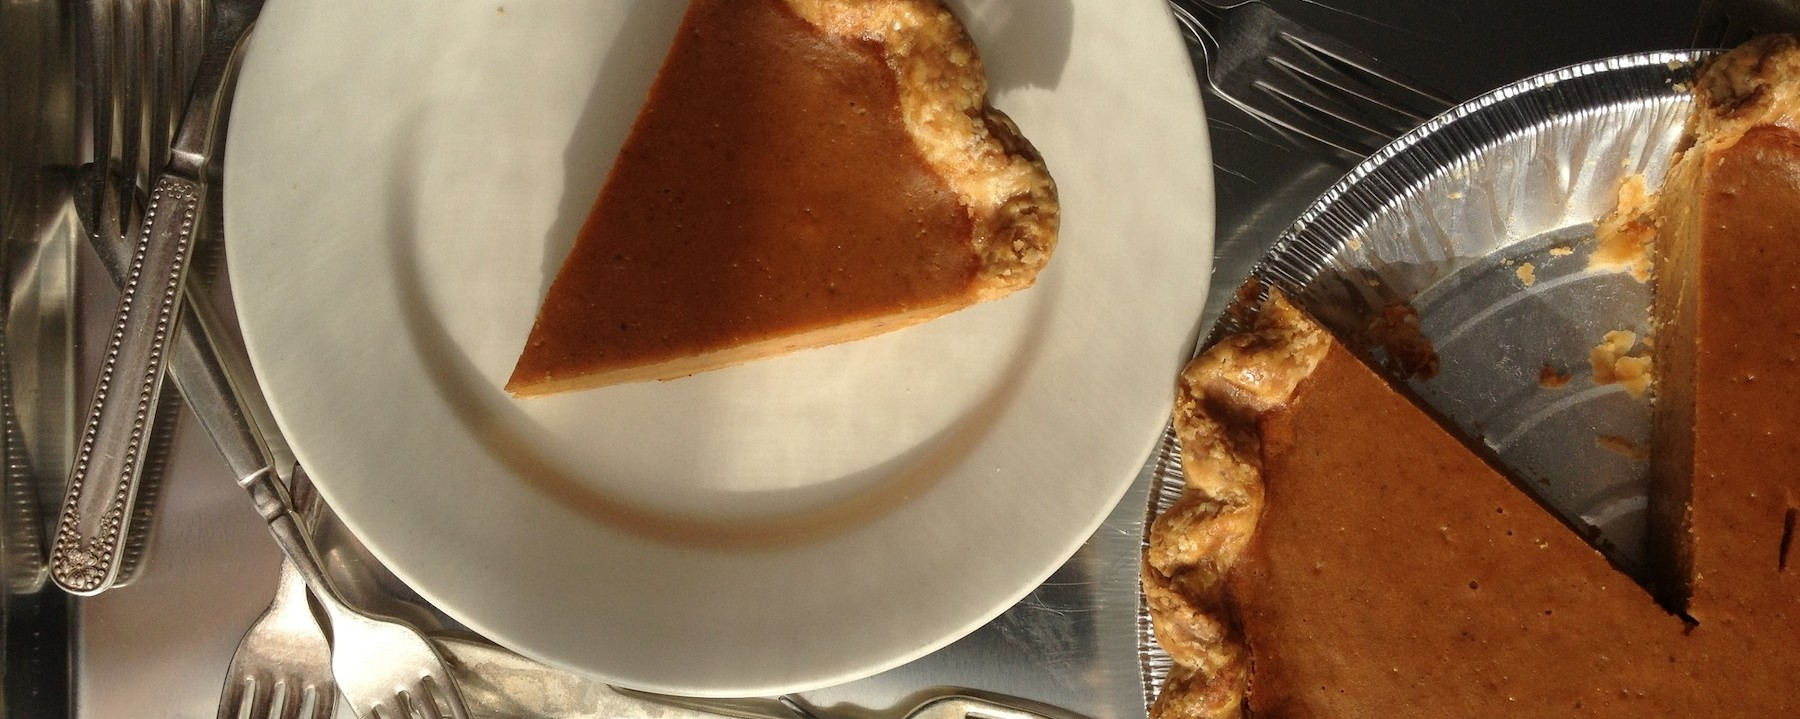 You Can Make Pie Out of Almost Anything